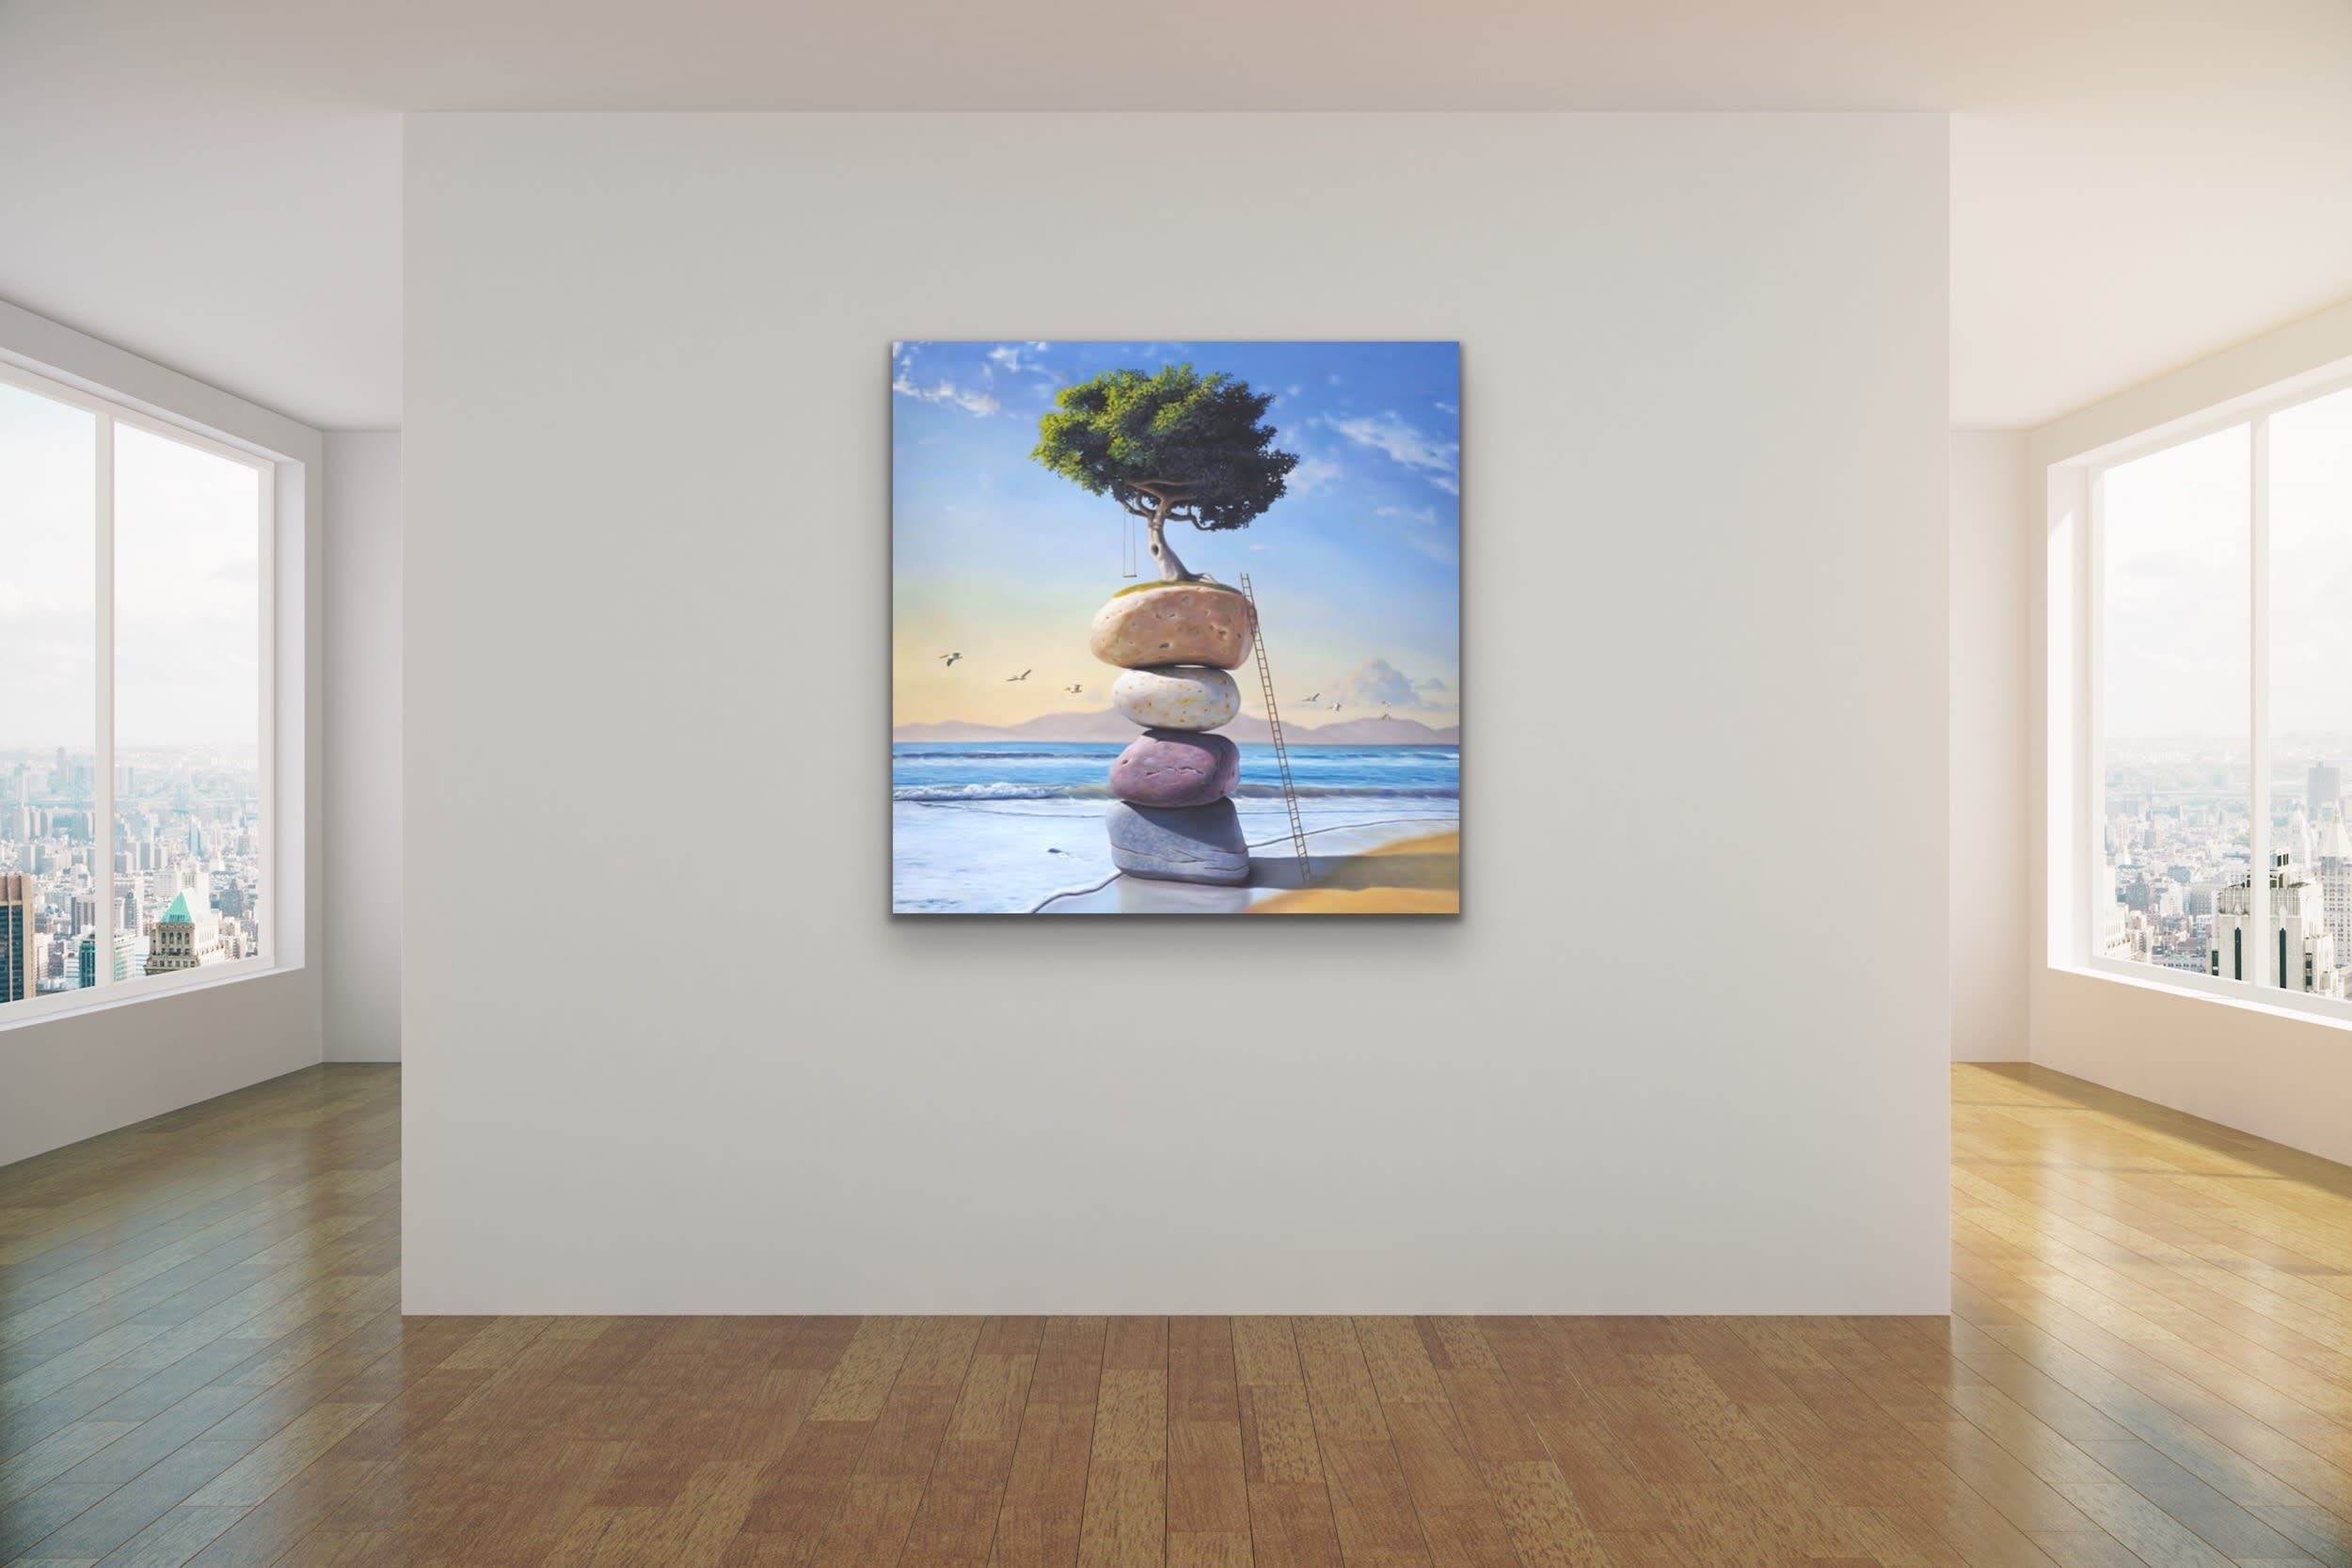 <div class='title'>           Paul Bond Magical Realism Poetry Serene Landscape Animals Nature Surreal Metaphorical Whimsical Fantasy Evo Art Maui Lahaina Front Street Art Gallery 9         </div>